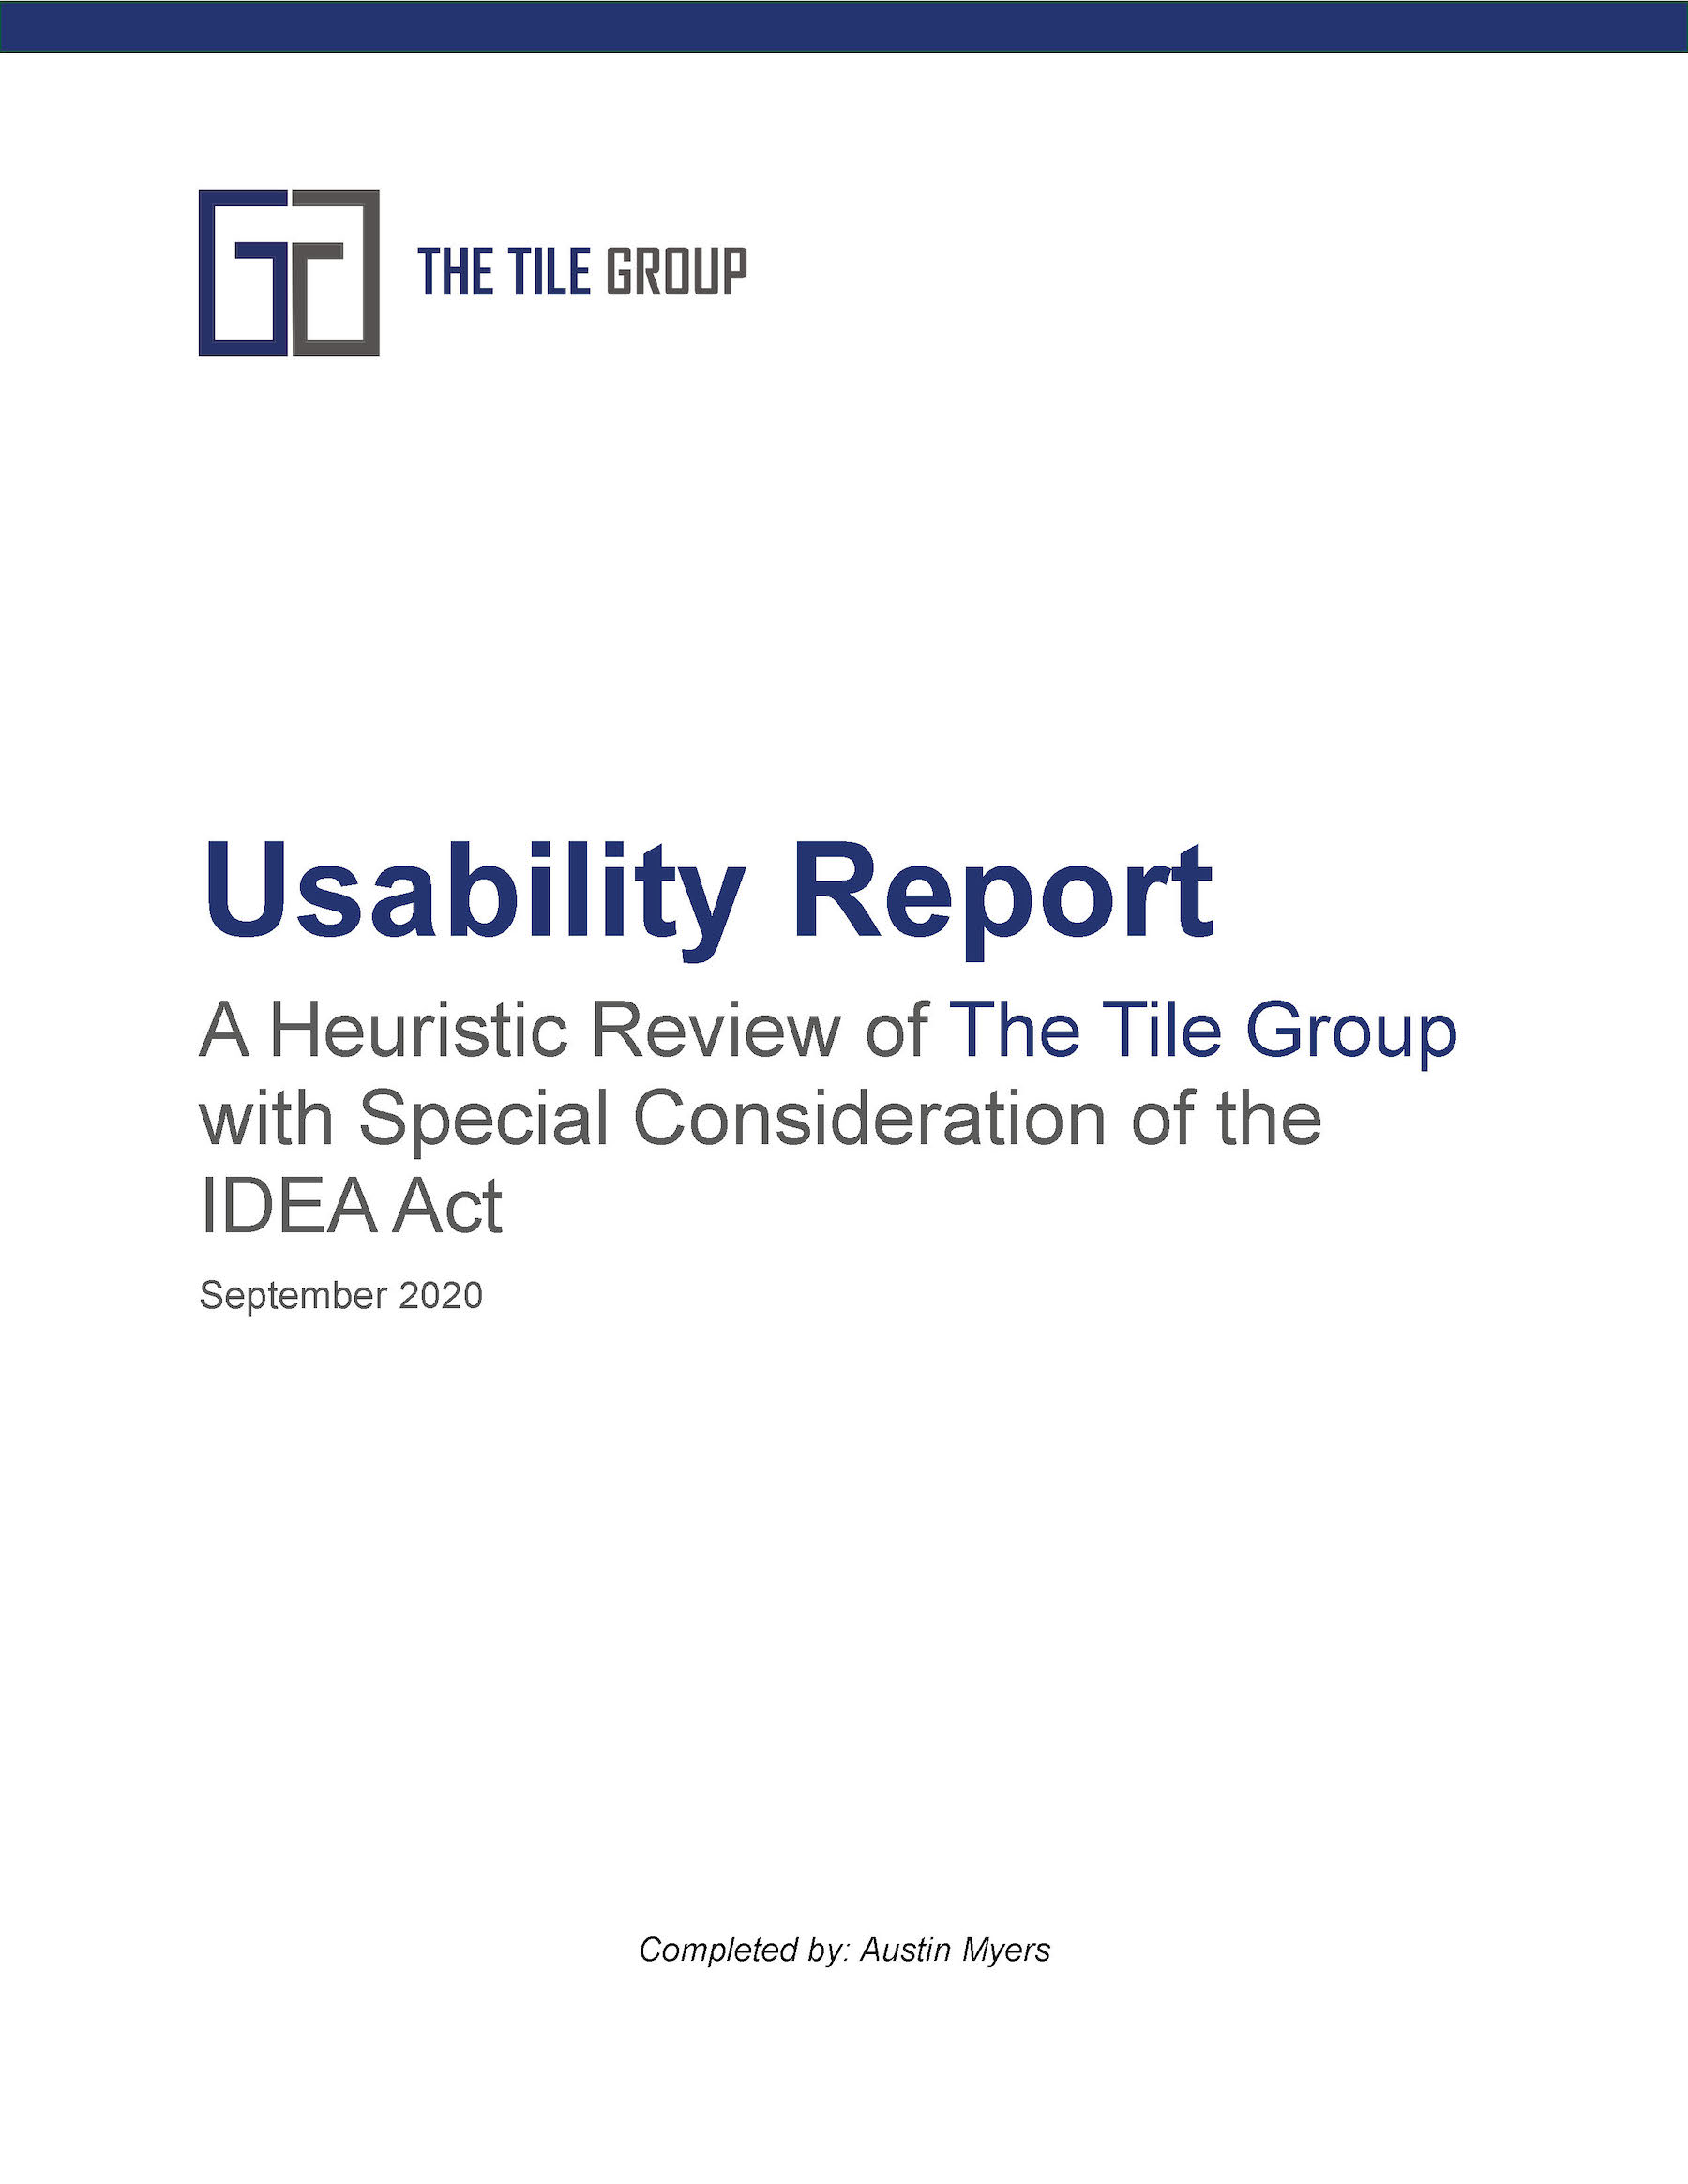 Usability Report Title Page